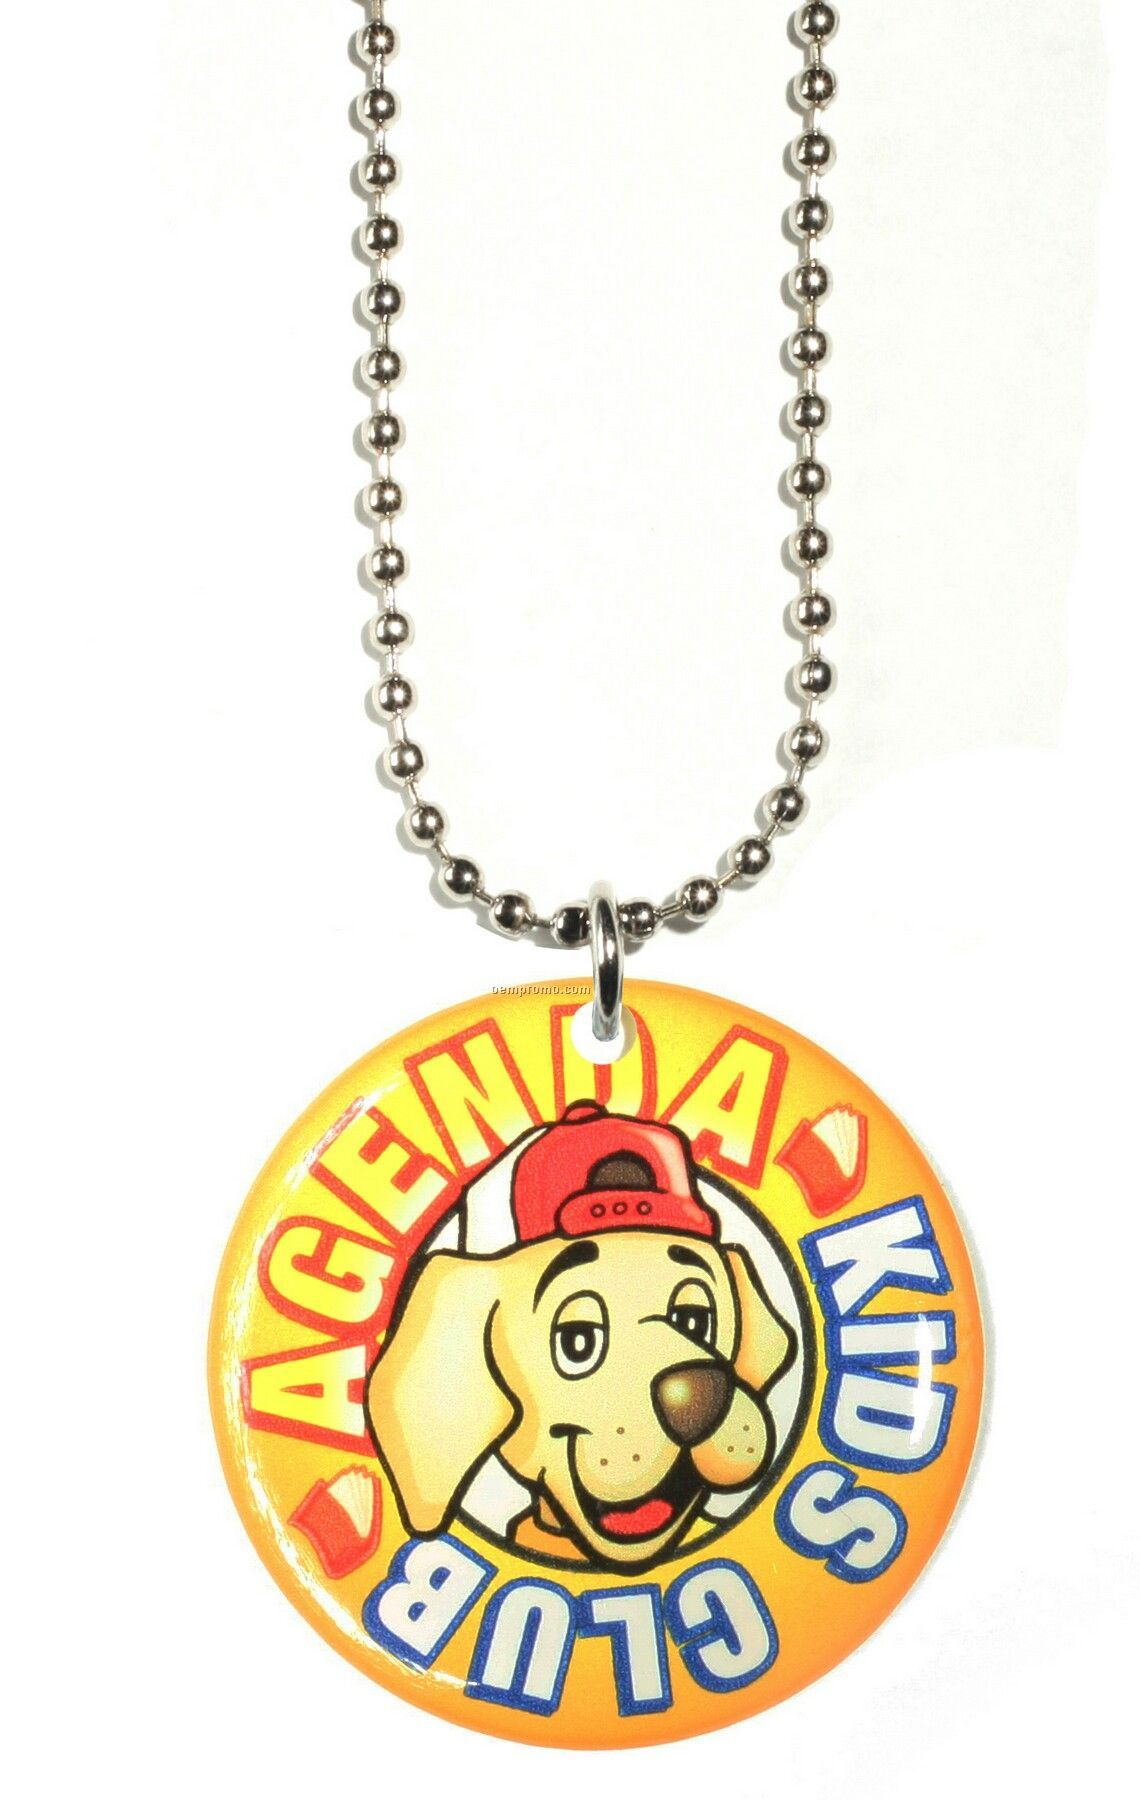 Pendants On Ball Chains (8.1 To 9 Sq. In.)